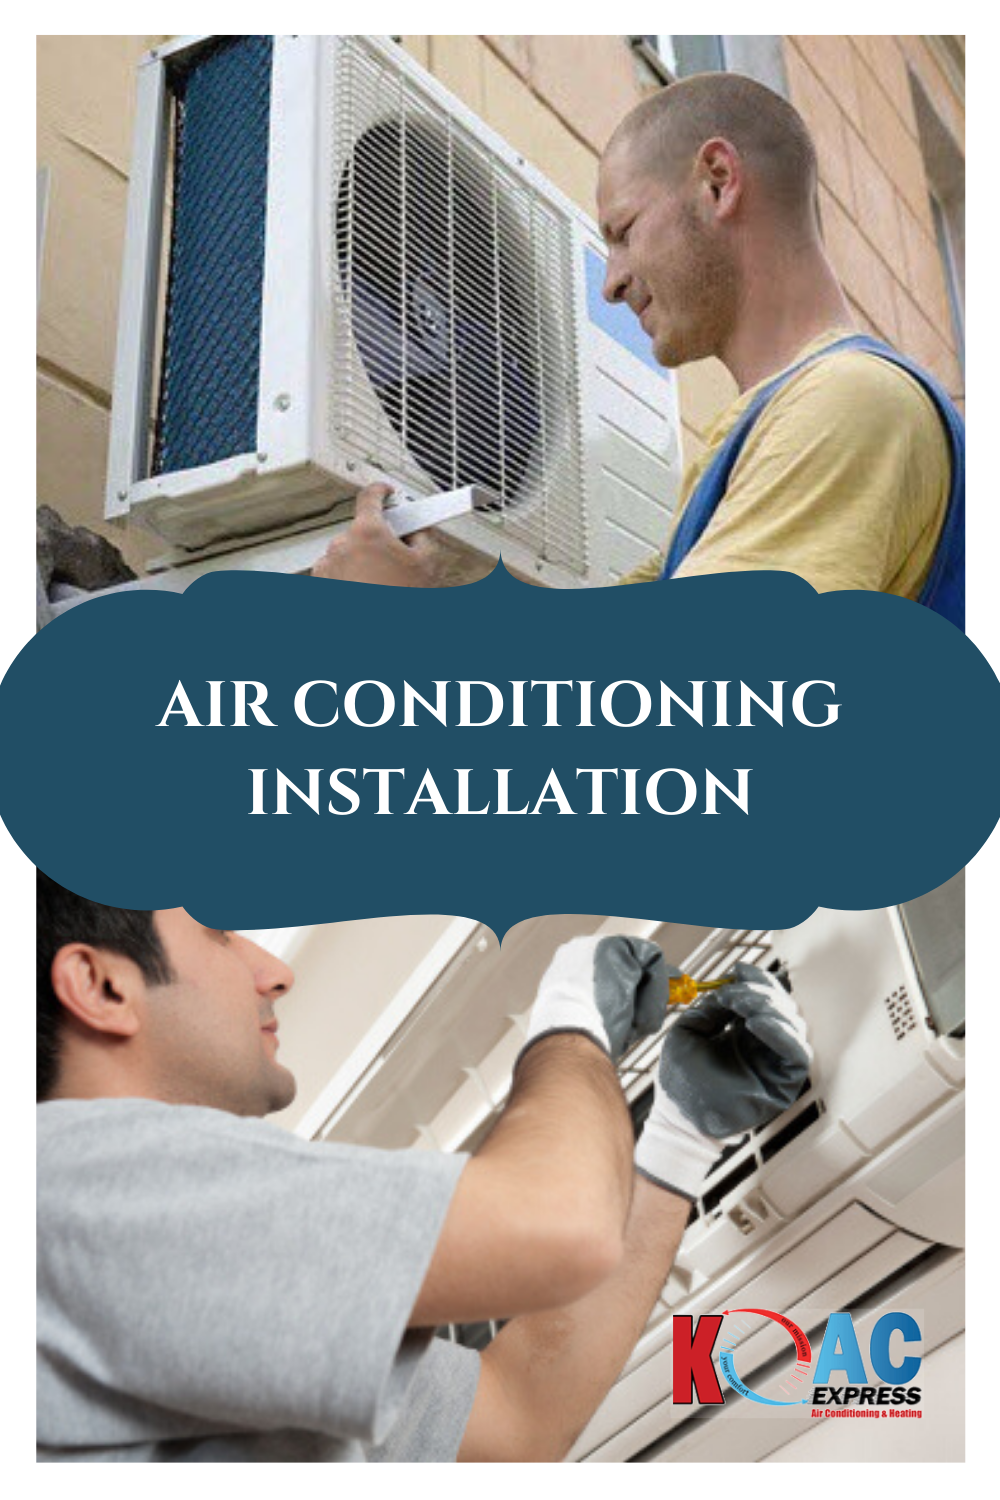 AC Installation & Replacement in Spring TX in 2020 Air